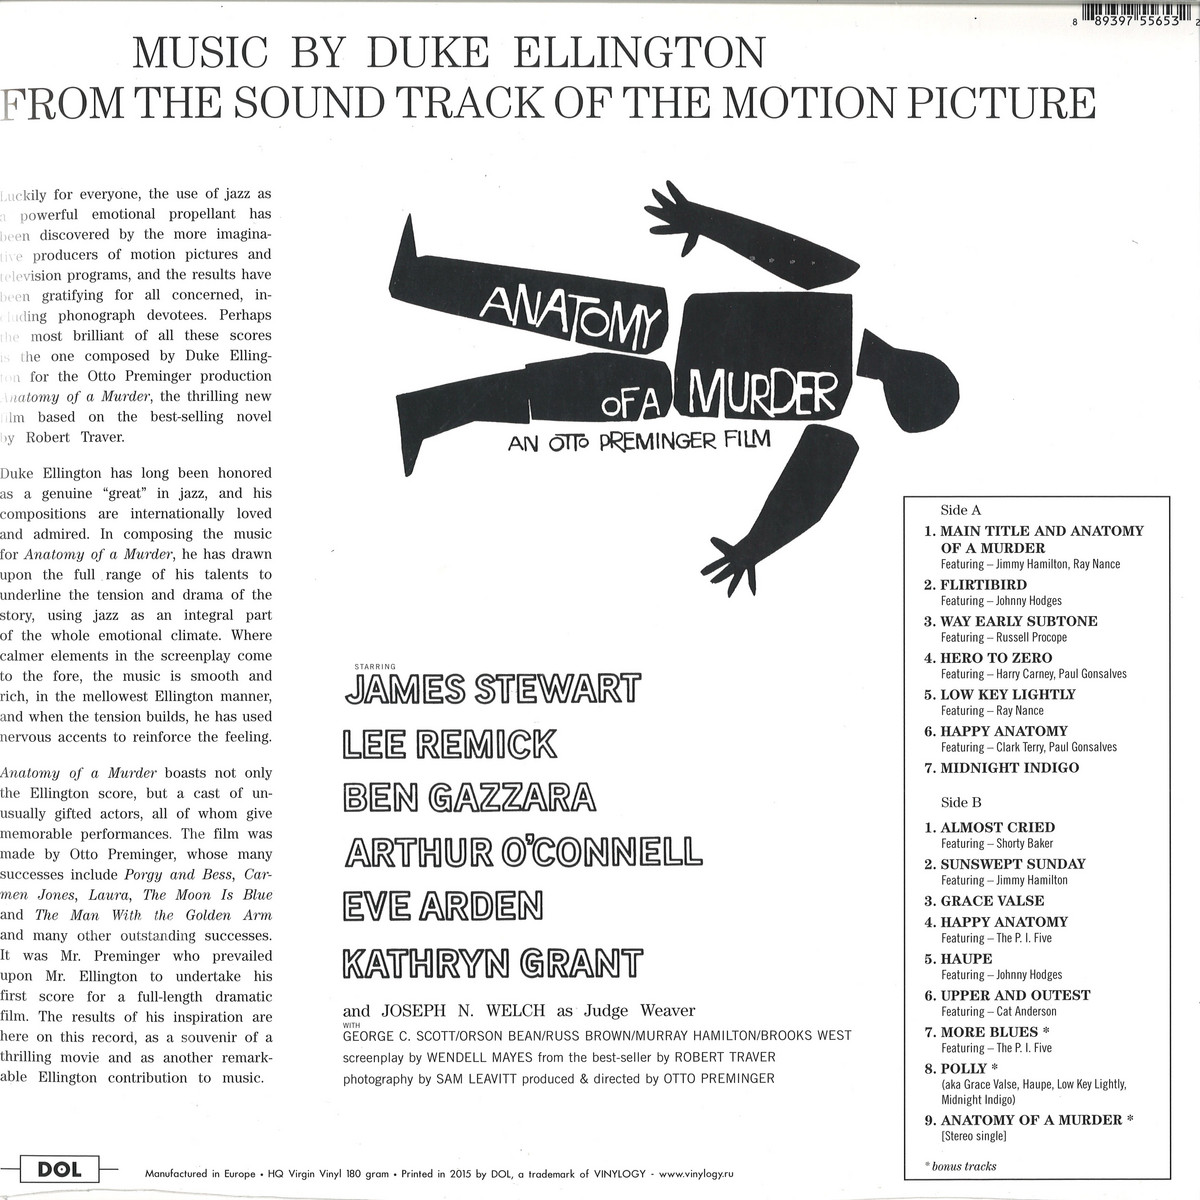 Duke Ellington Original Score Anatomy Of A Murder Dol Dost653h